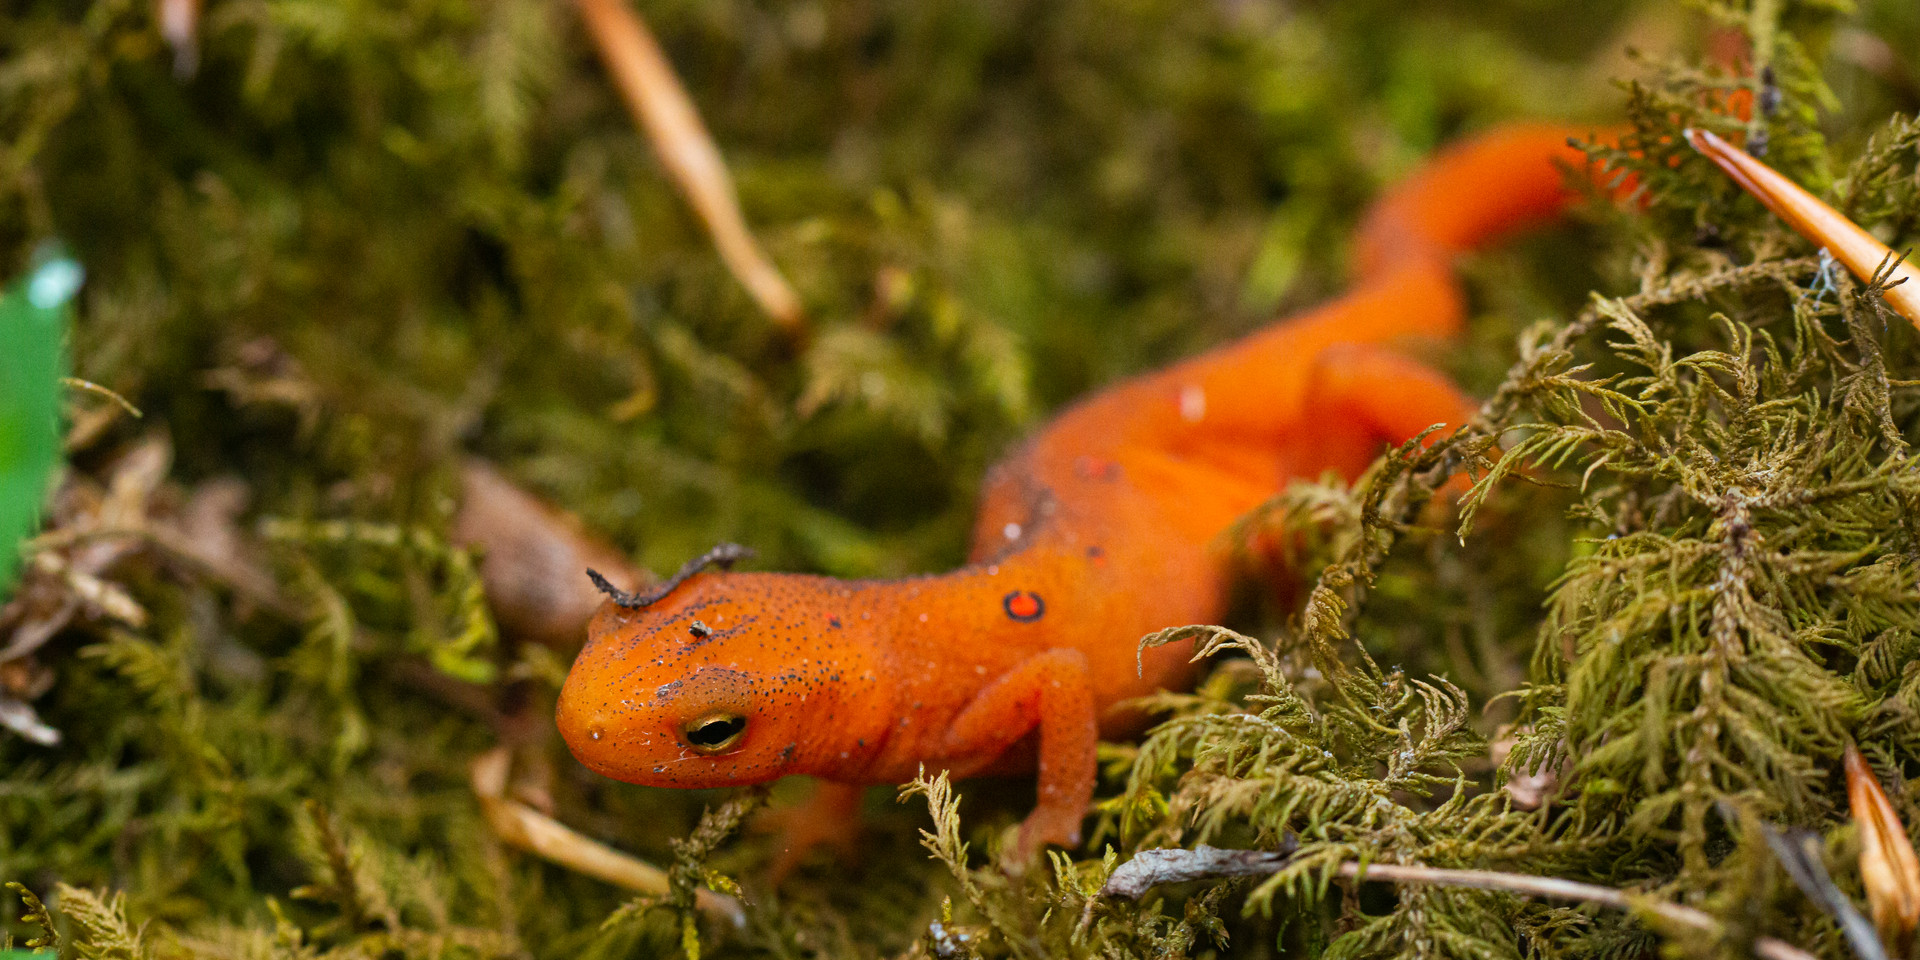 Eastern Newt (eft stage)